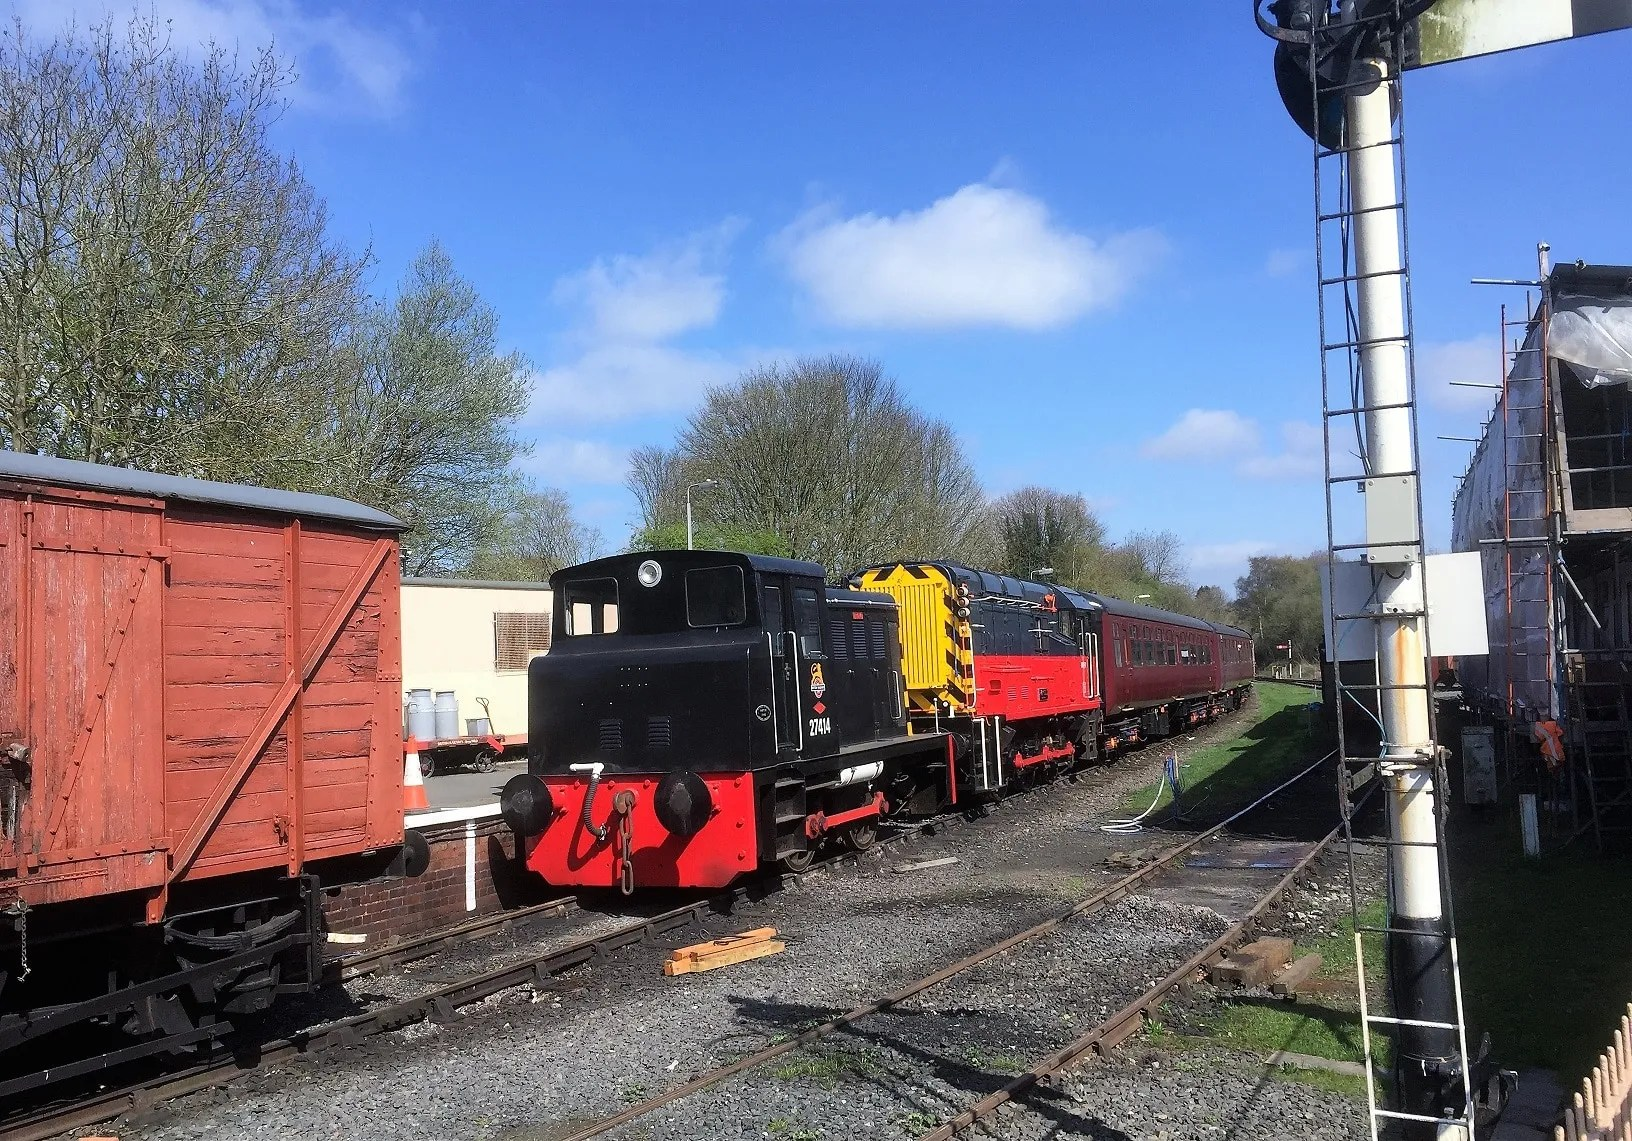 North British diesel shunter works no 27414 at Telford Steam Railway